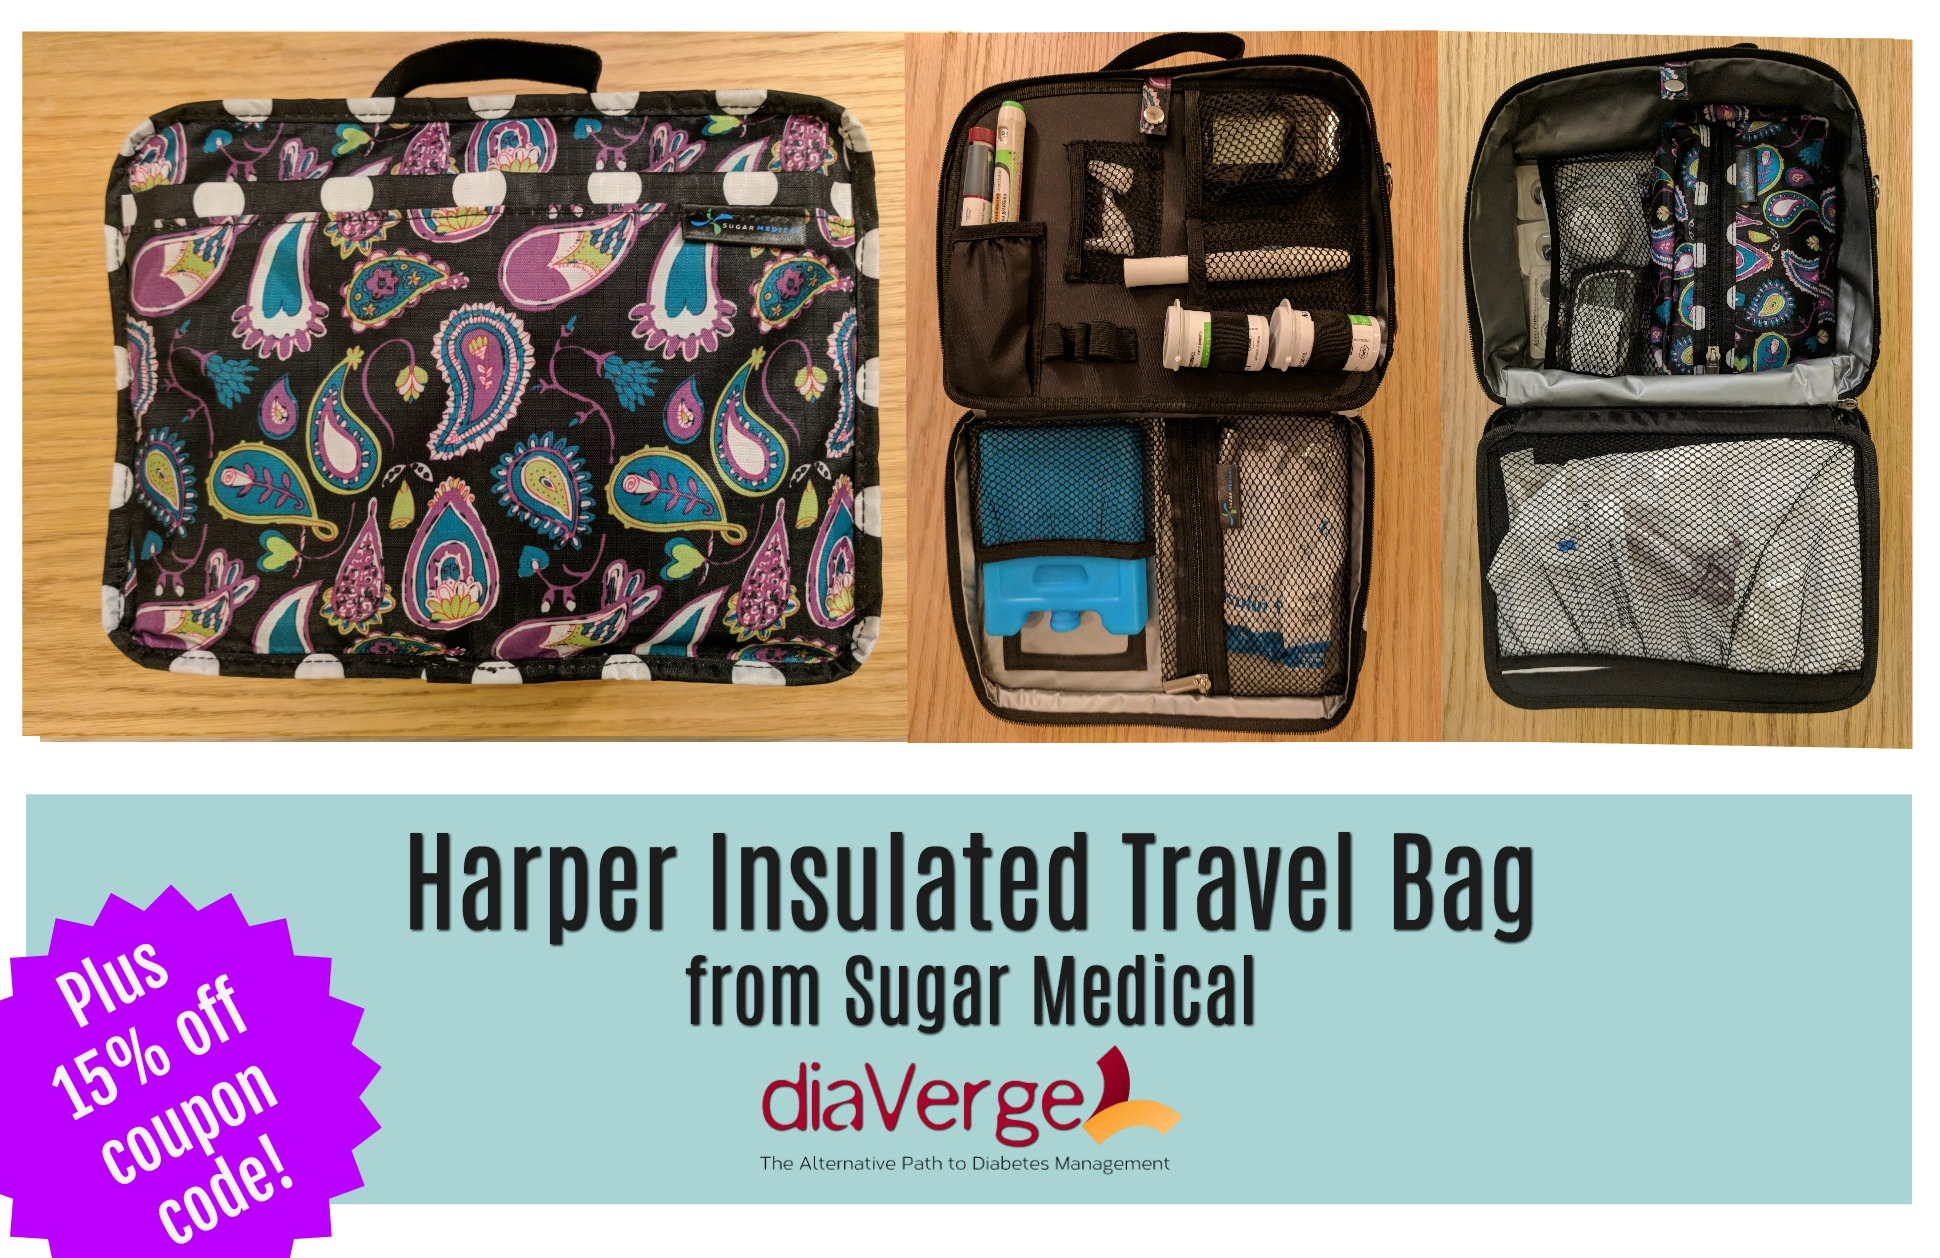 Harper Insulated Travel Bag From Sugar